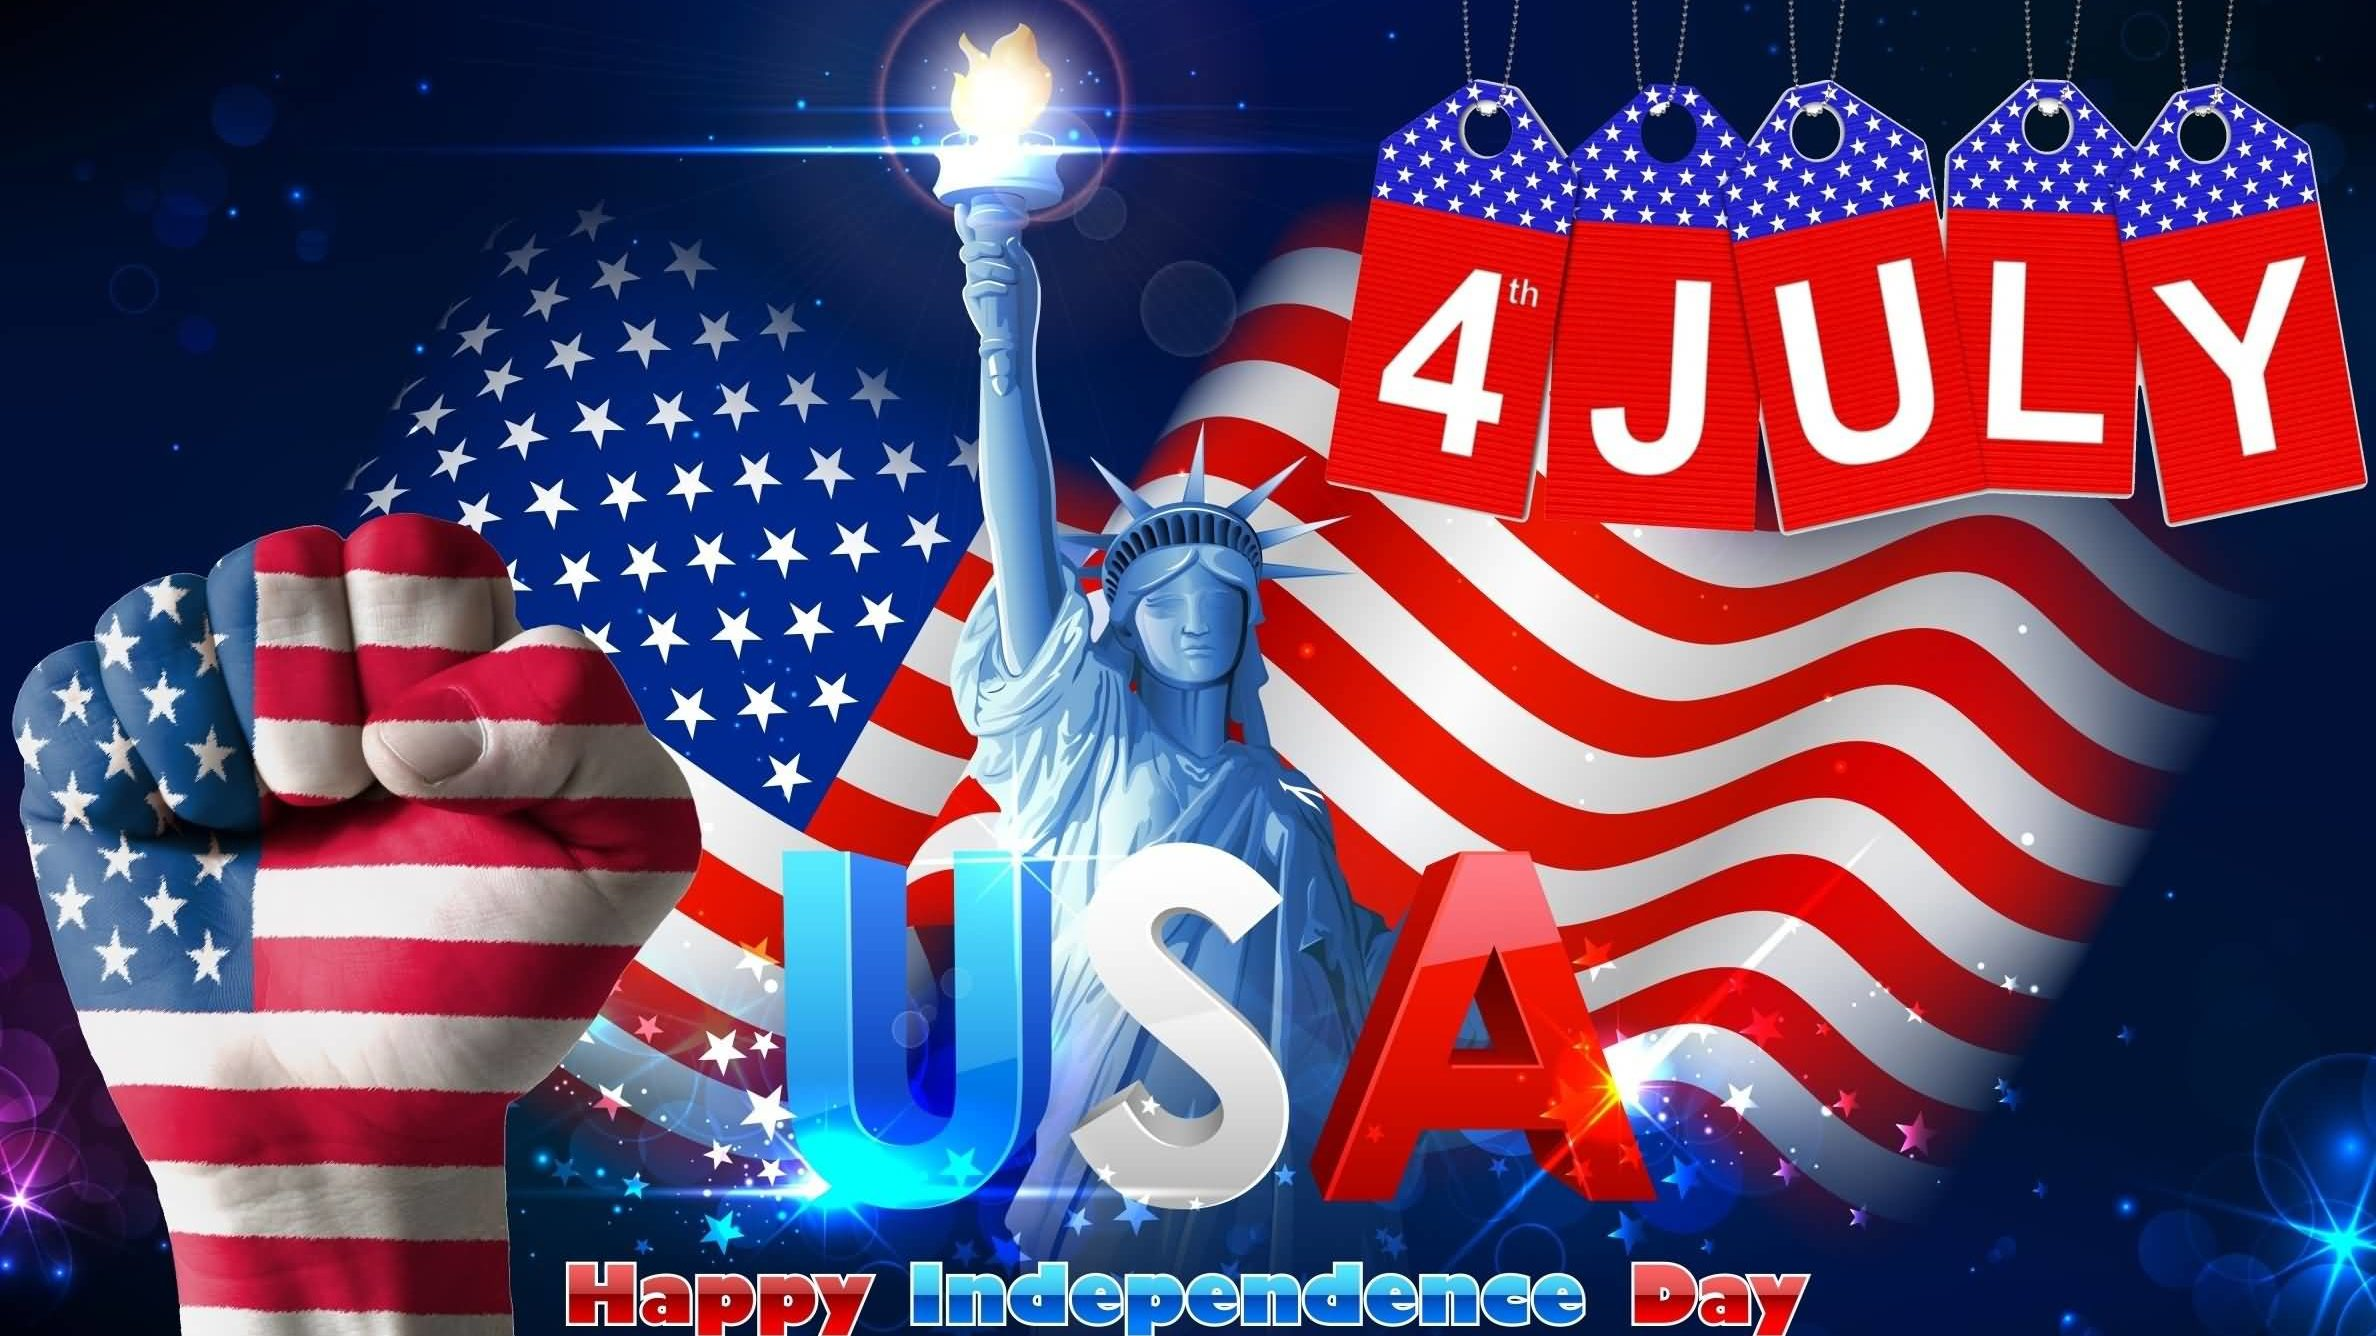 4th of July US Independence Day Greetings